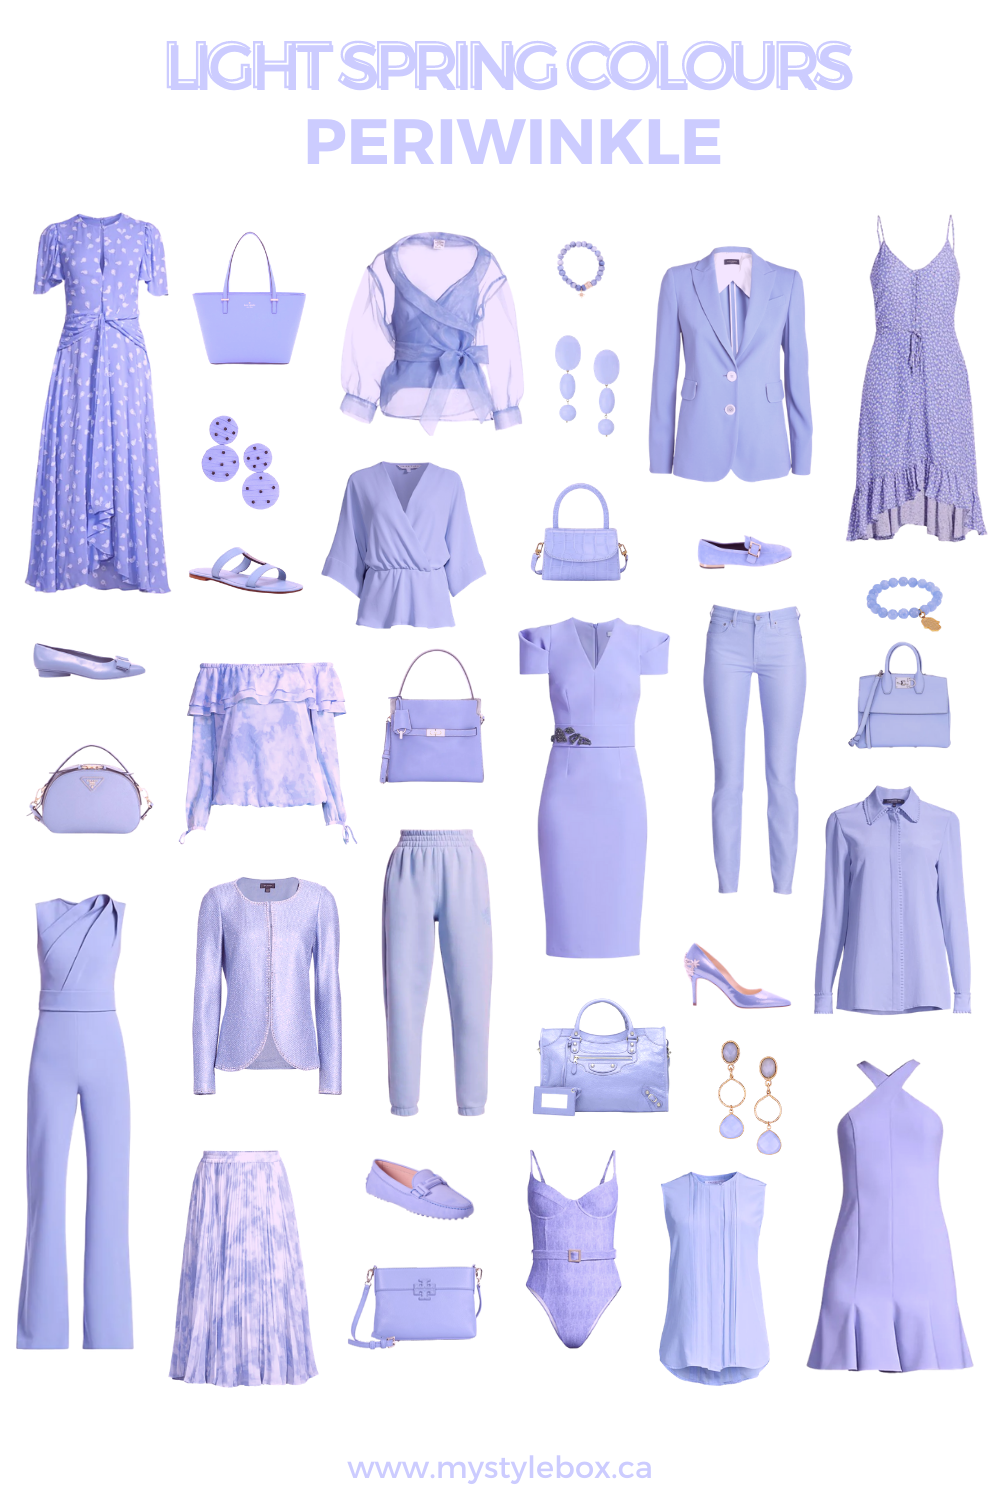 LIGHT SPRING COLOURS PERIWINKLE